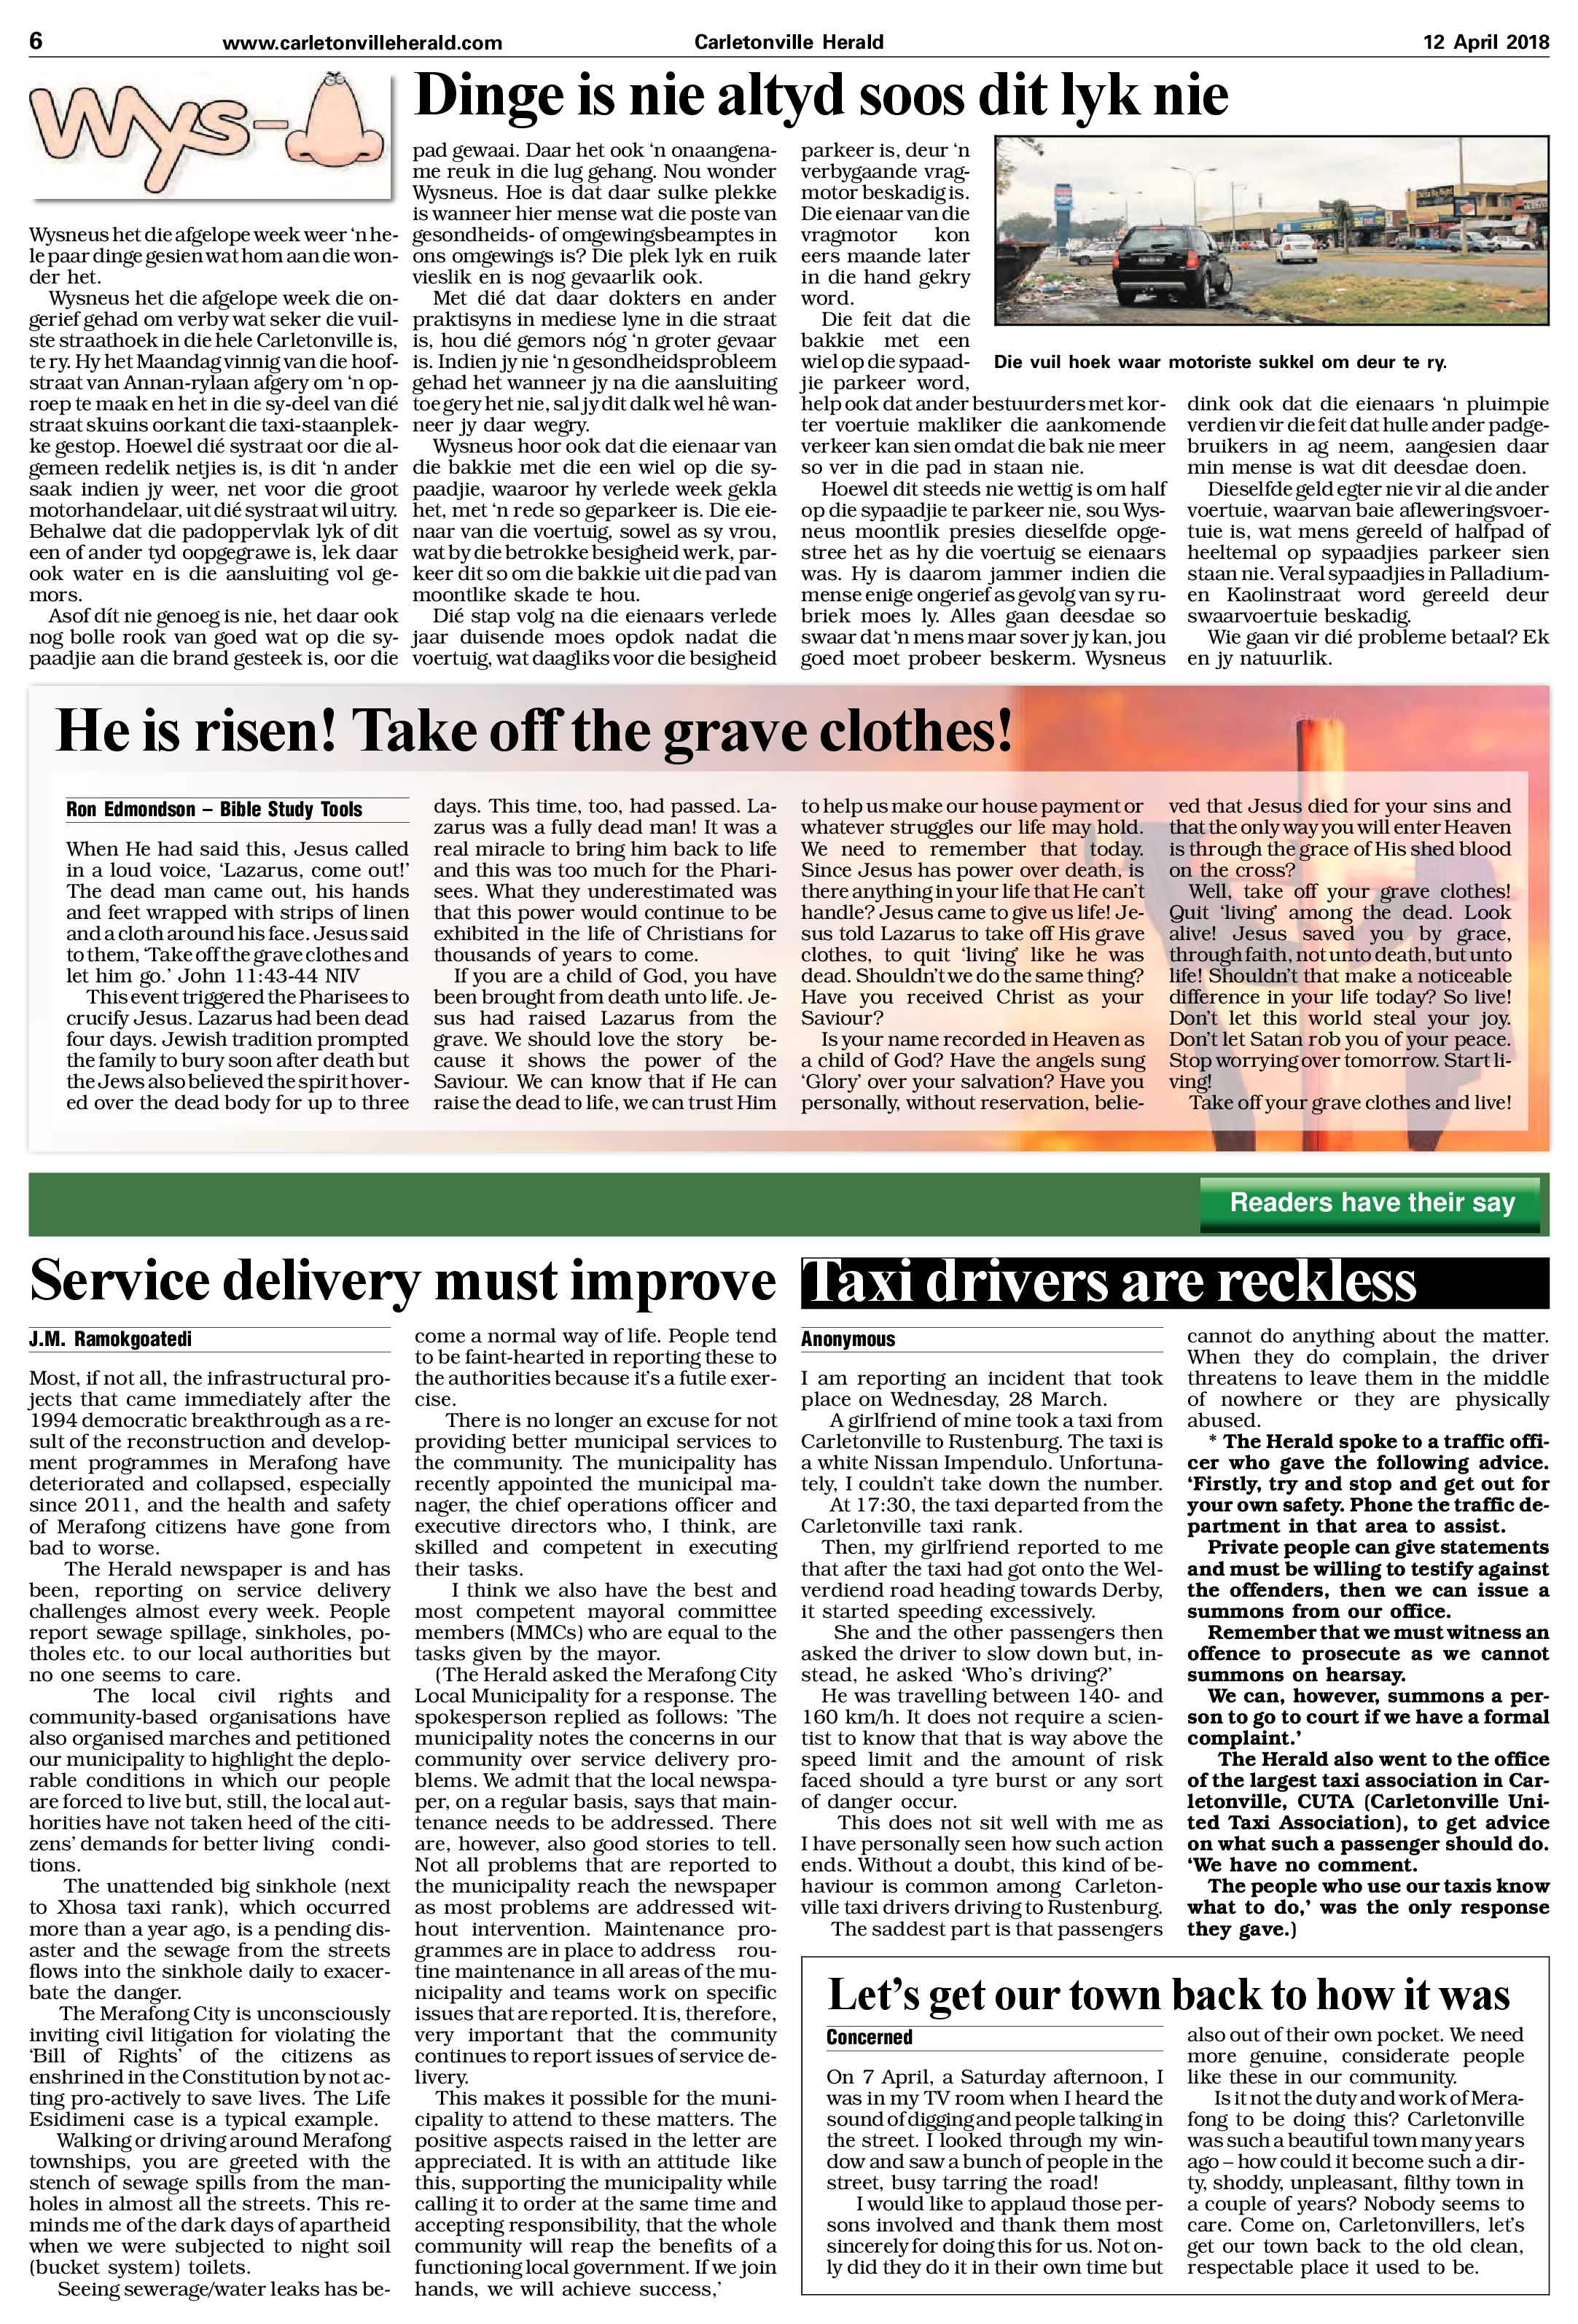 12-april-2018-epapers-page-6